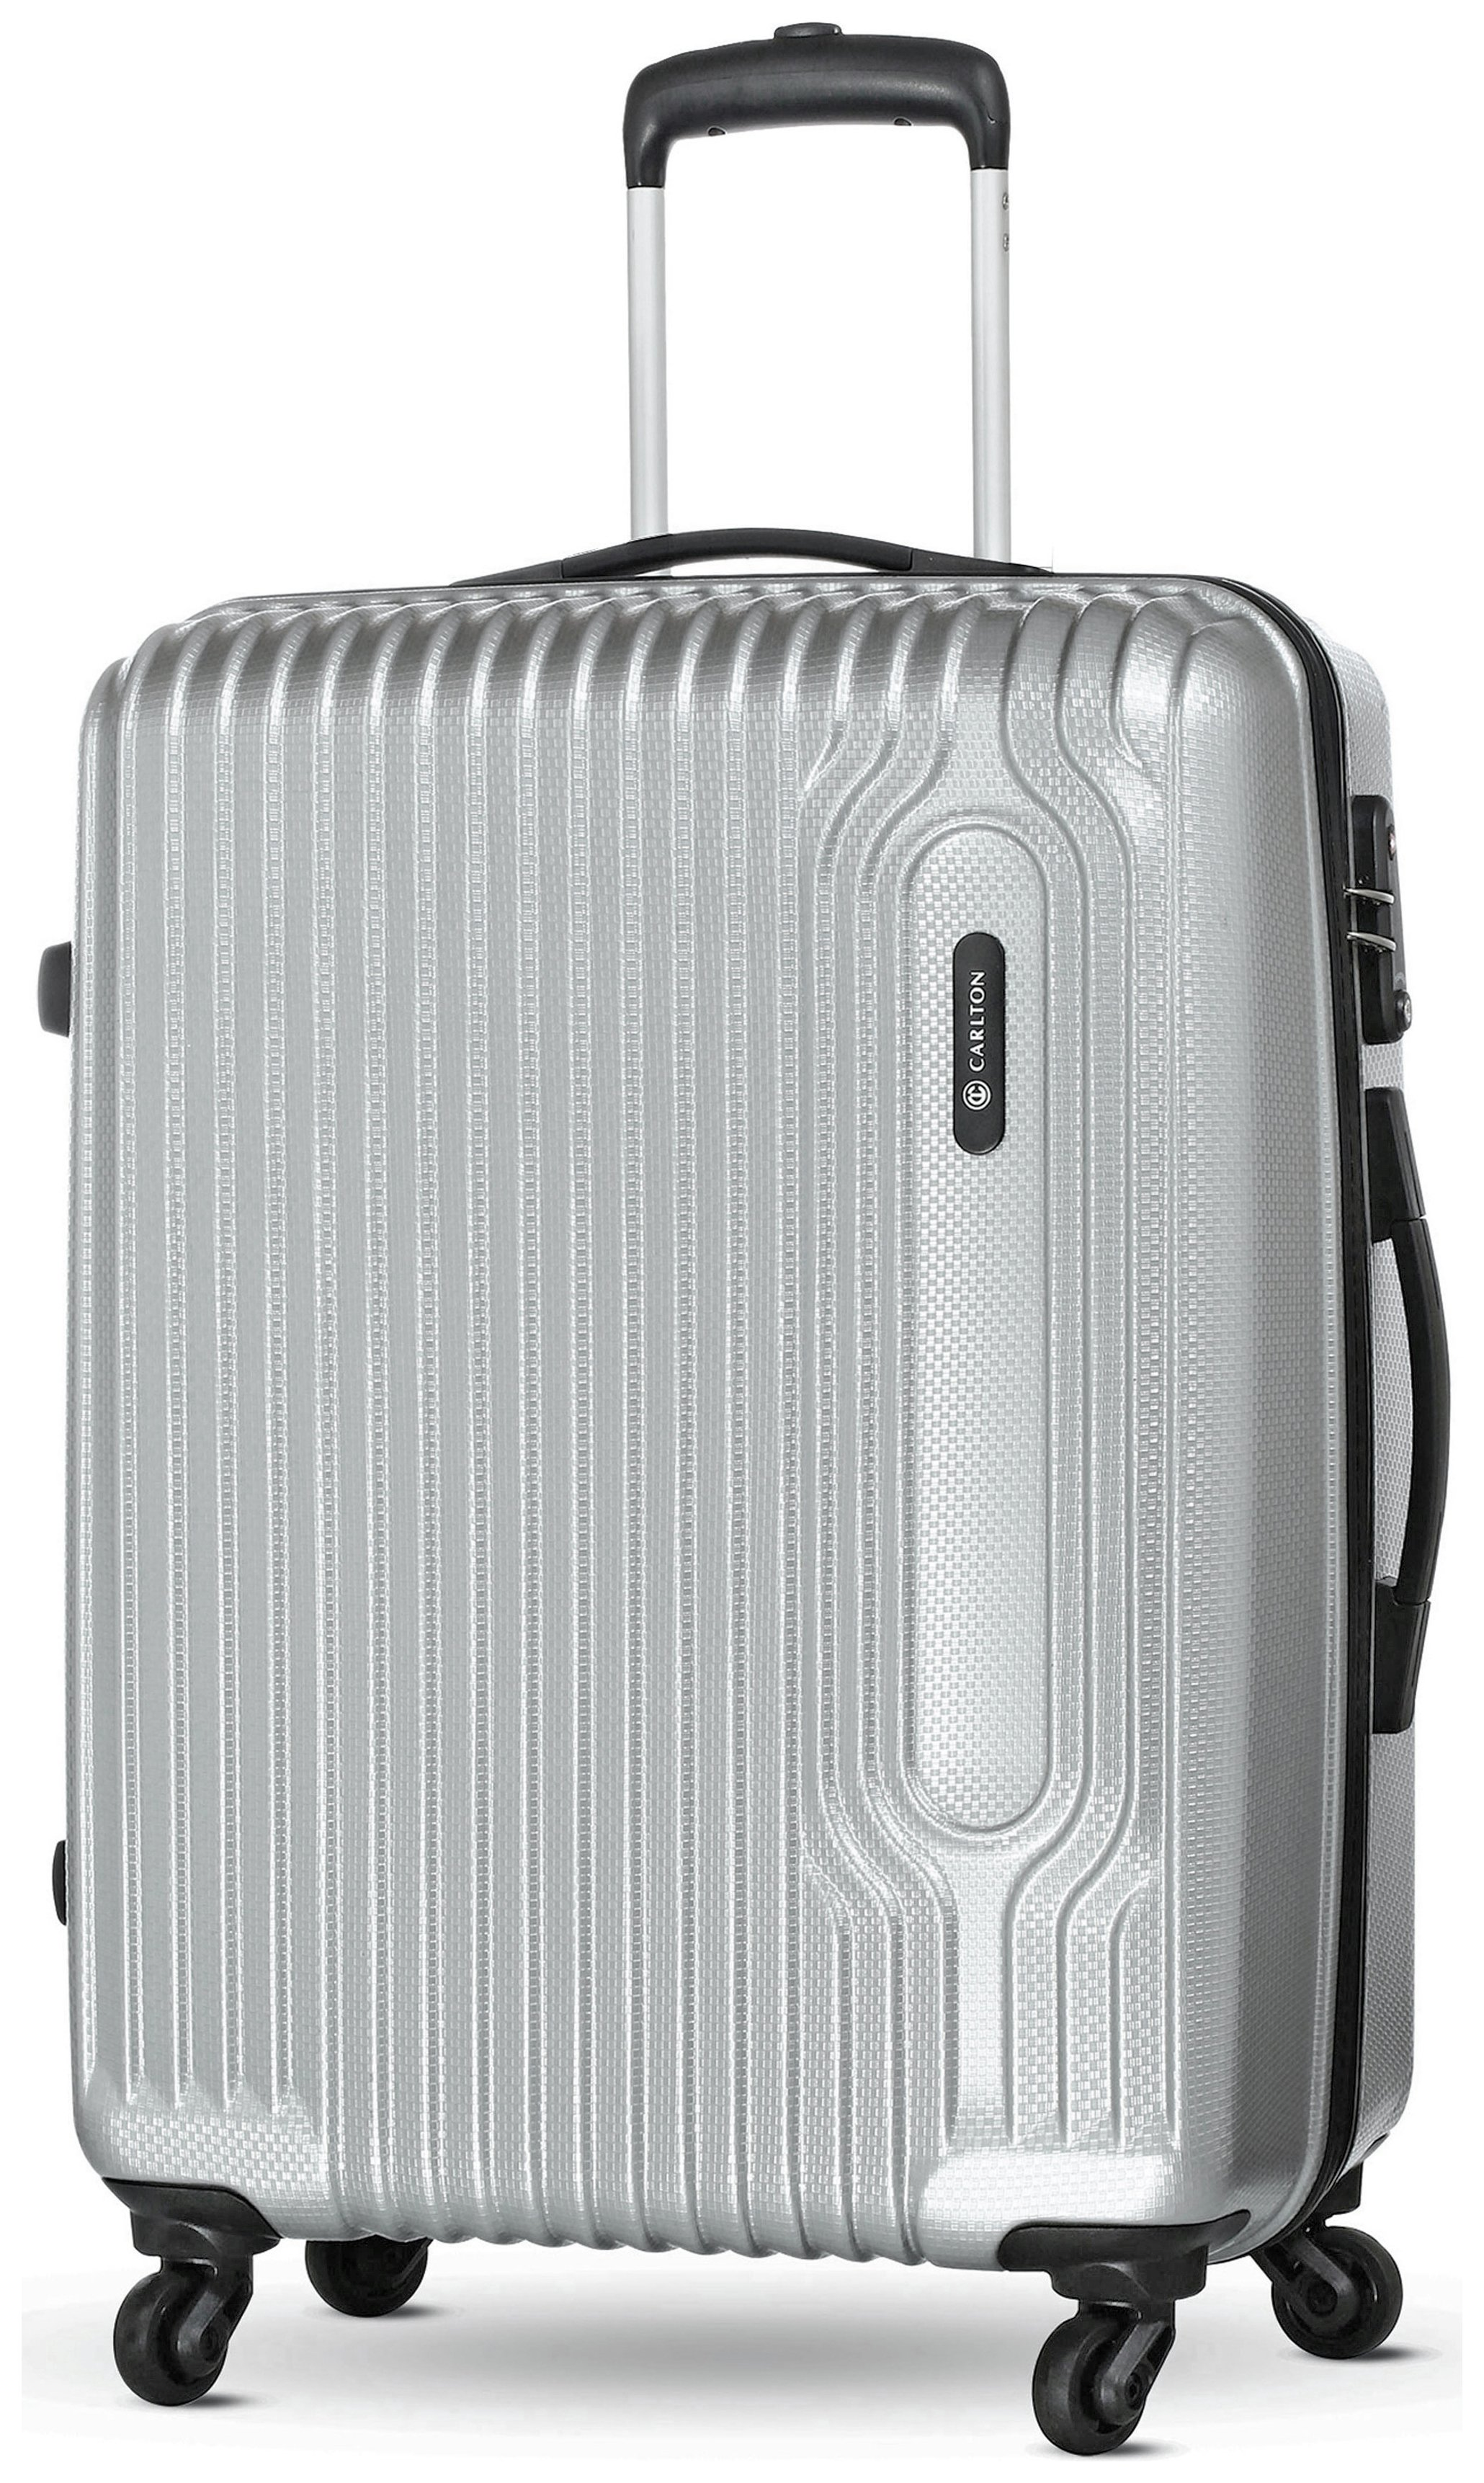 Image of Carlton - Tube Medium 4 Wheel Hard Suitcase - Silver